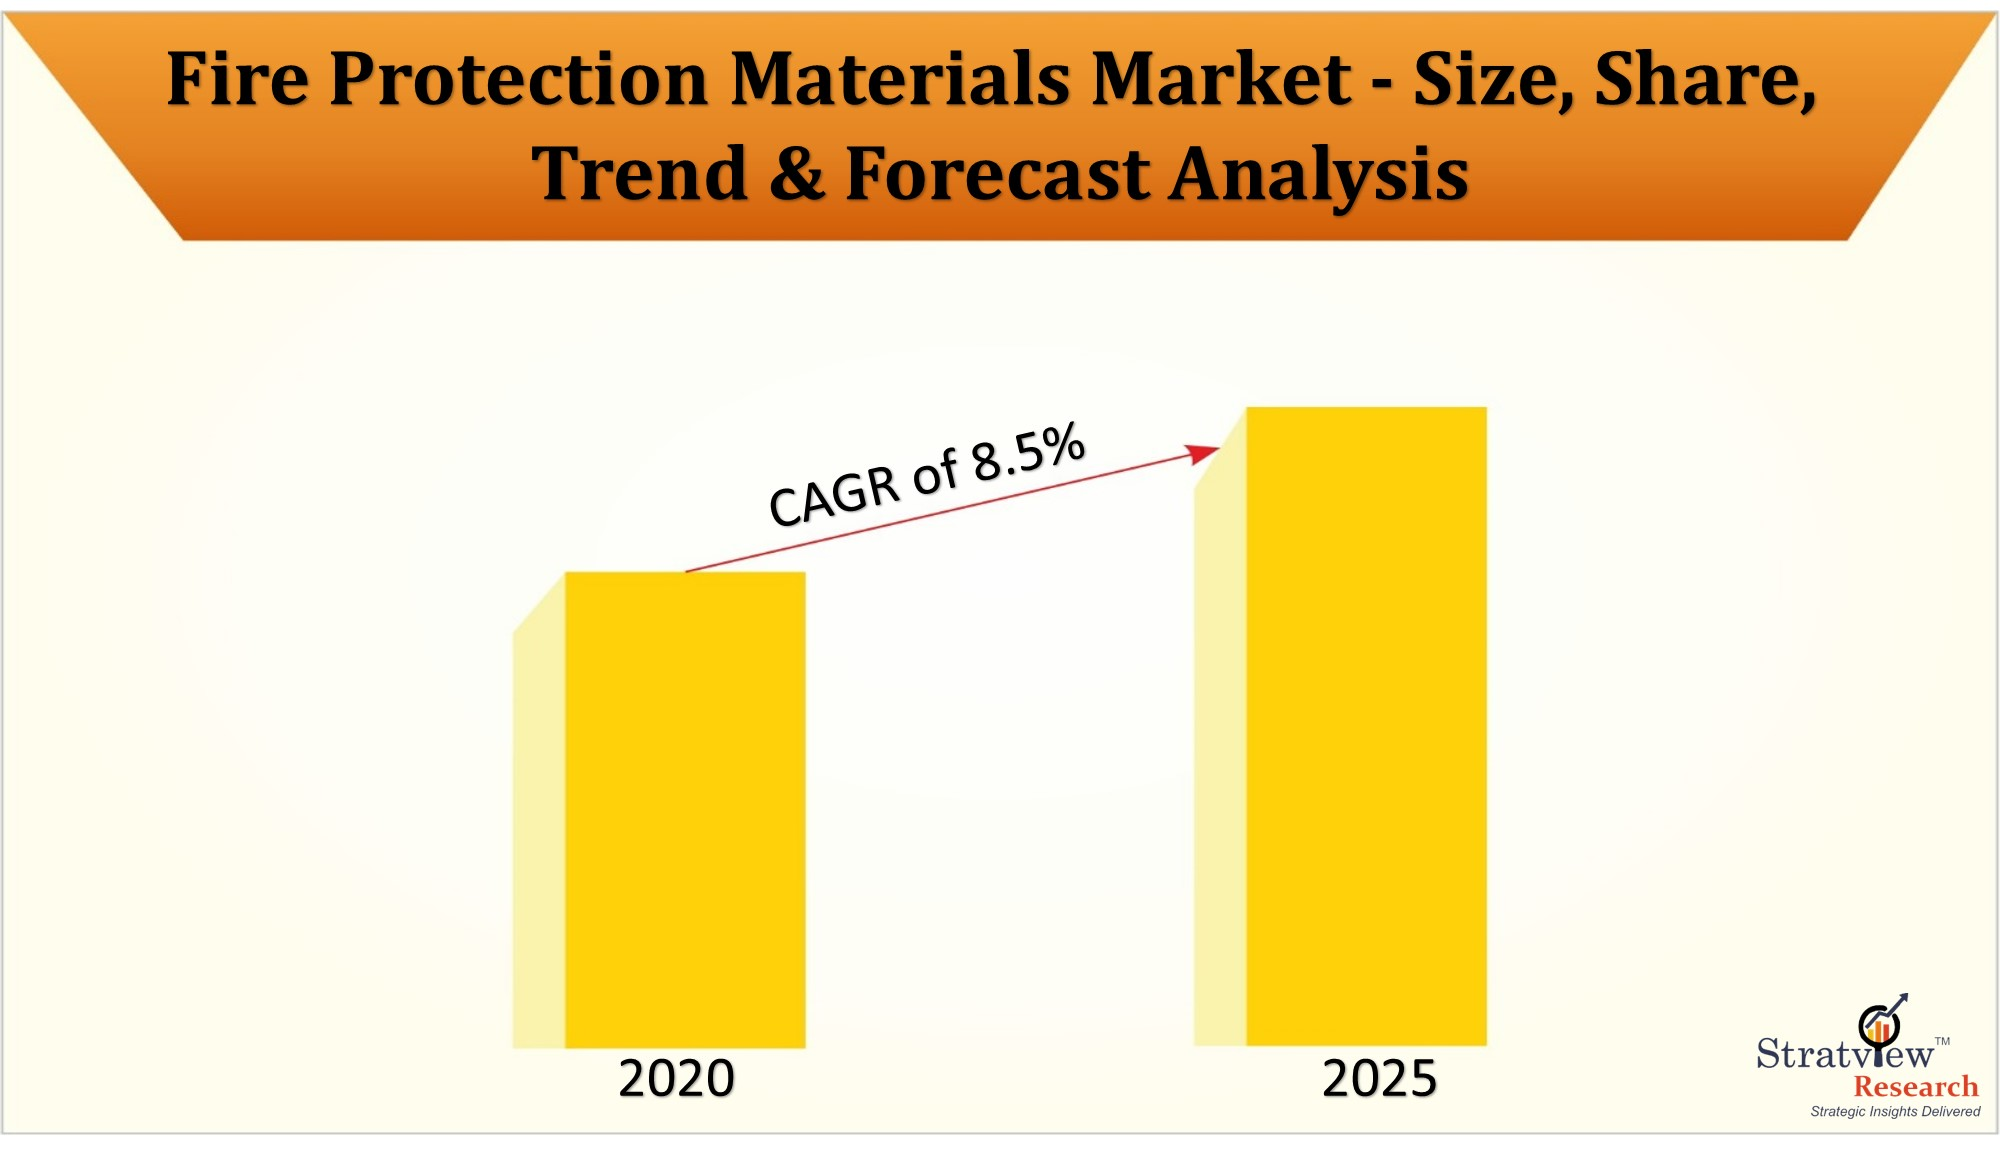 Fire Protection Materials Market likely to witness an impressive CAGR of 8.5%, as estimated by Stratview Research